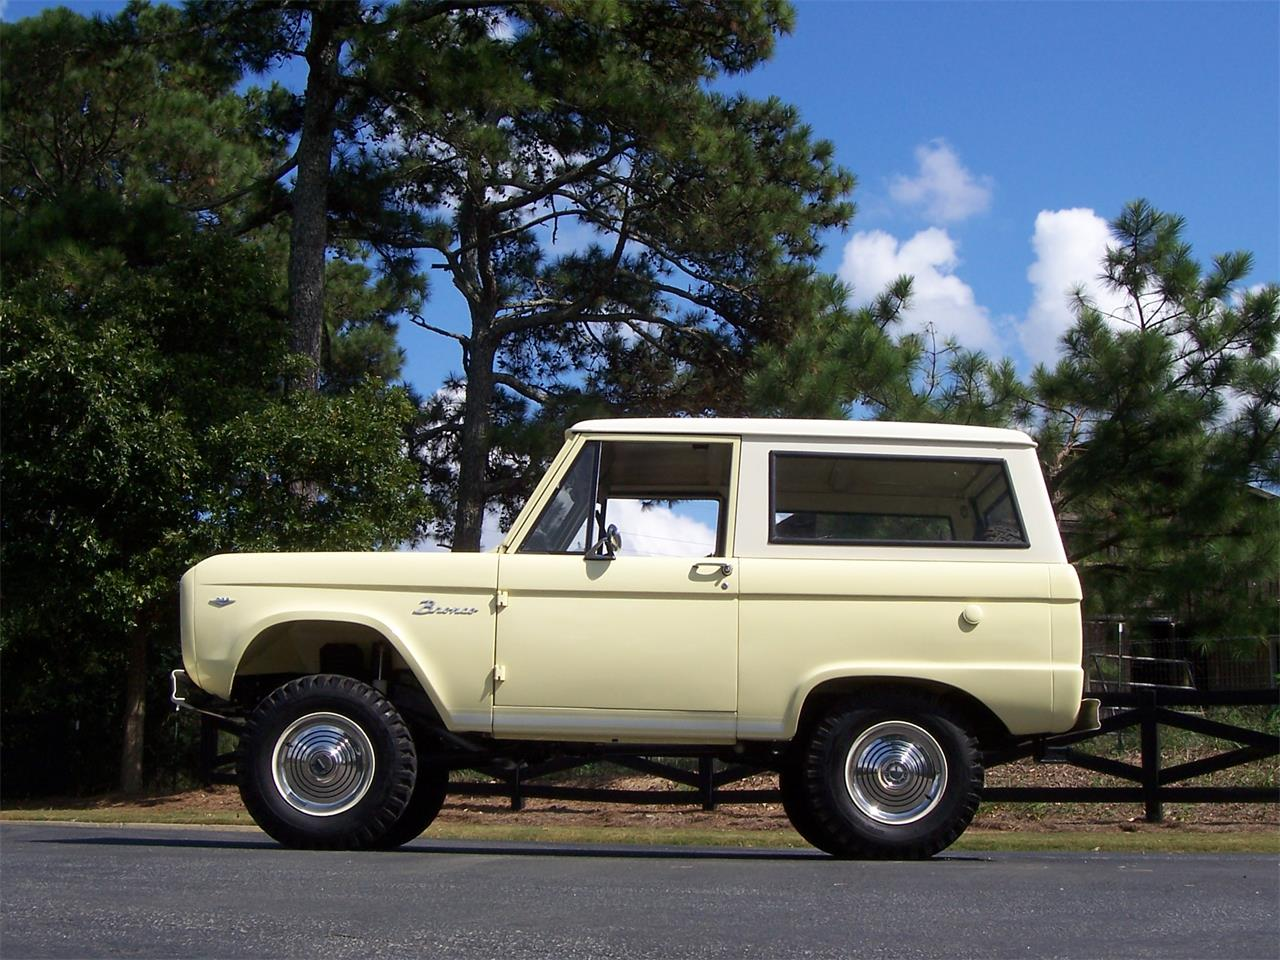 1966 Ford Bronco for sale in Alpharetta, GA – photo 29